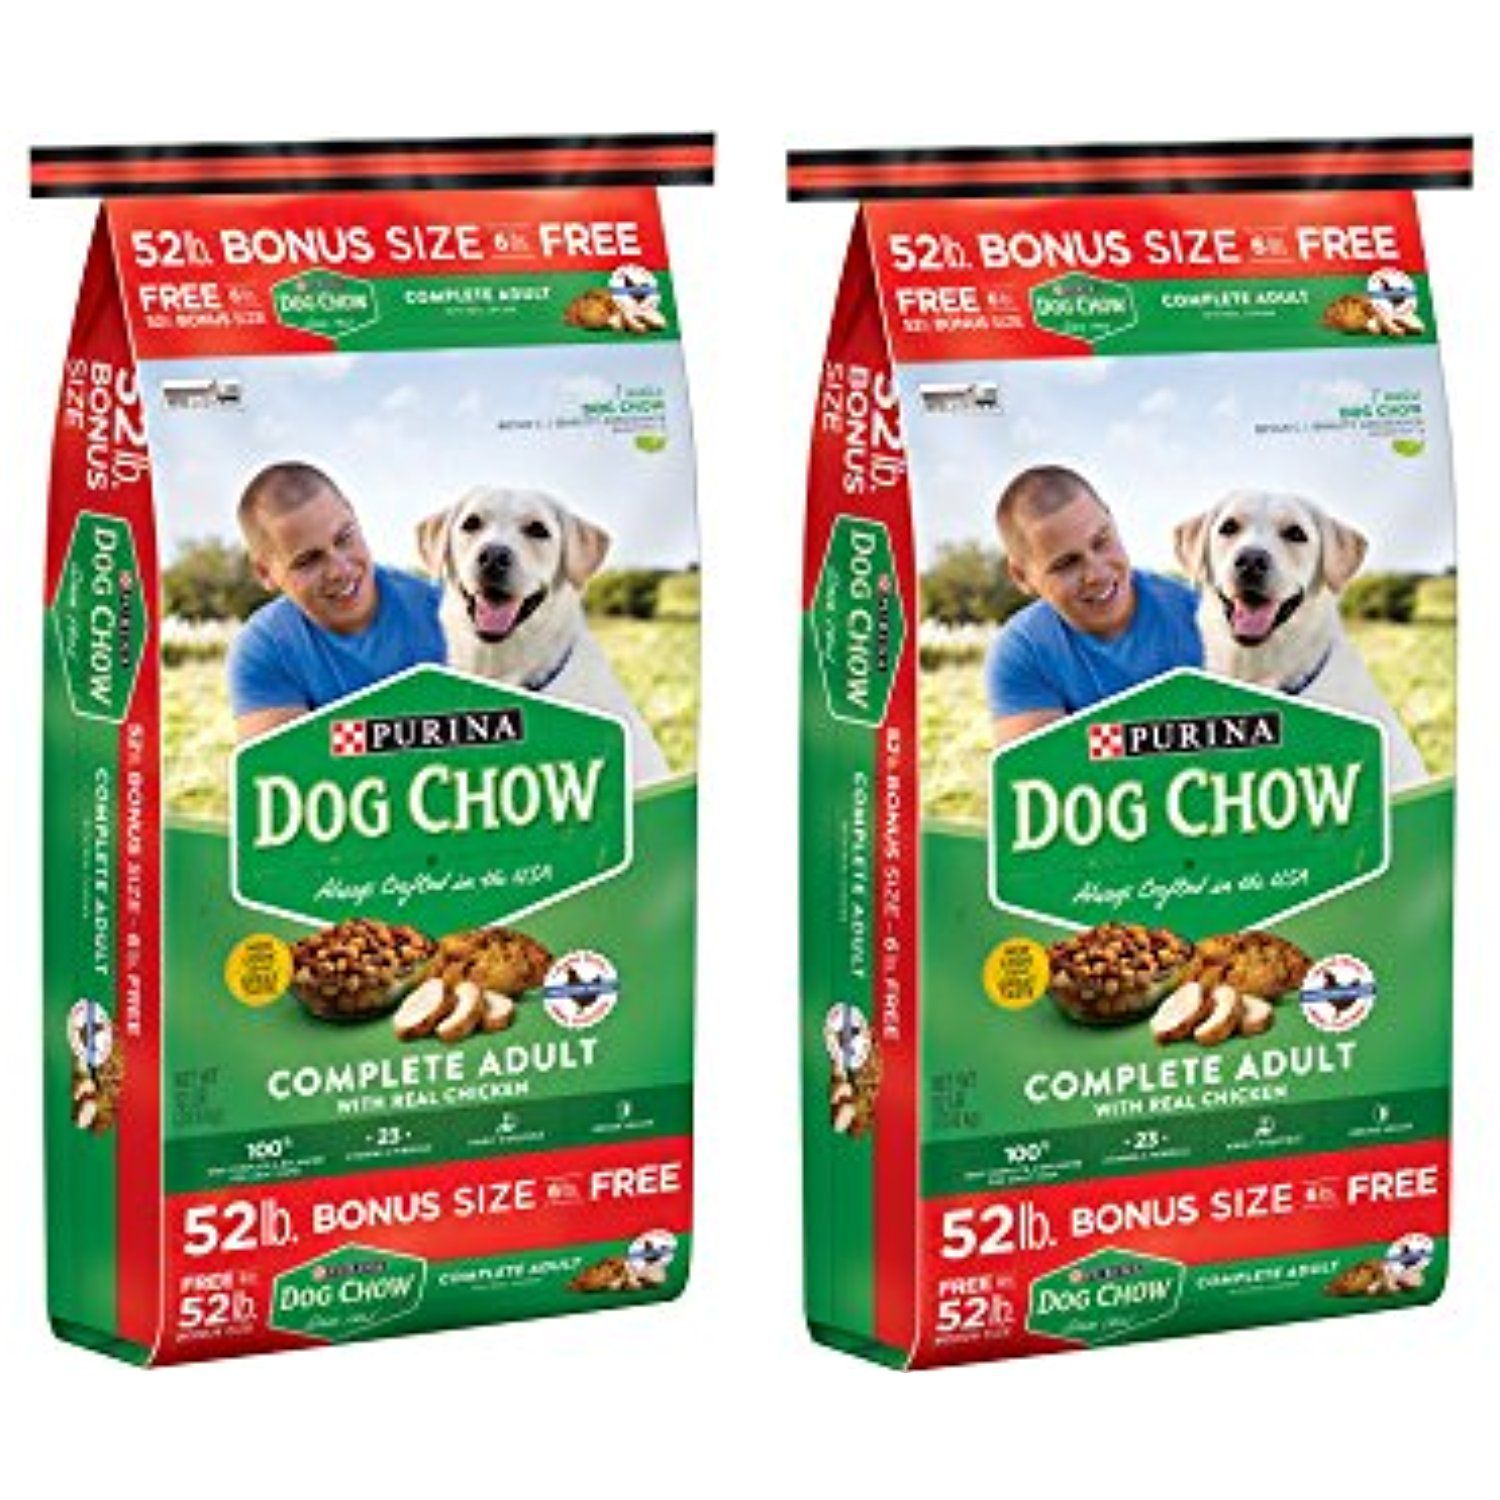 Purina Dog Chow Complete Adult Dry Dog Food 52 Lbs 2 Pack Made